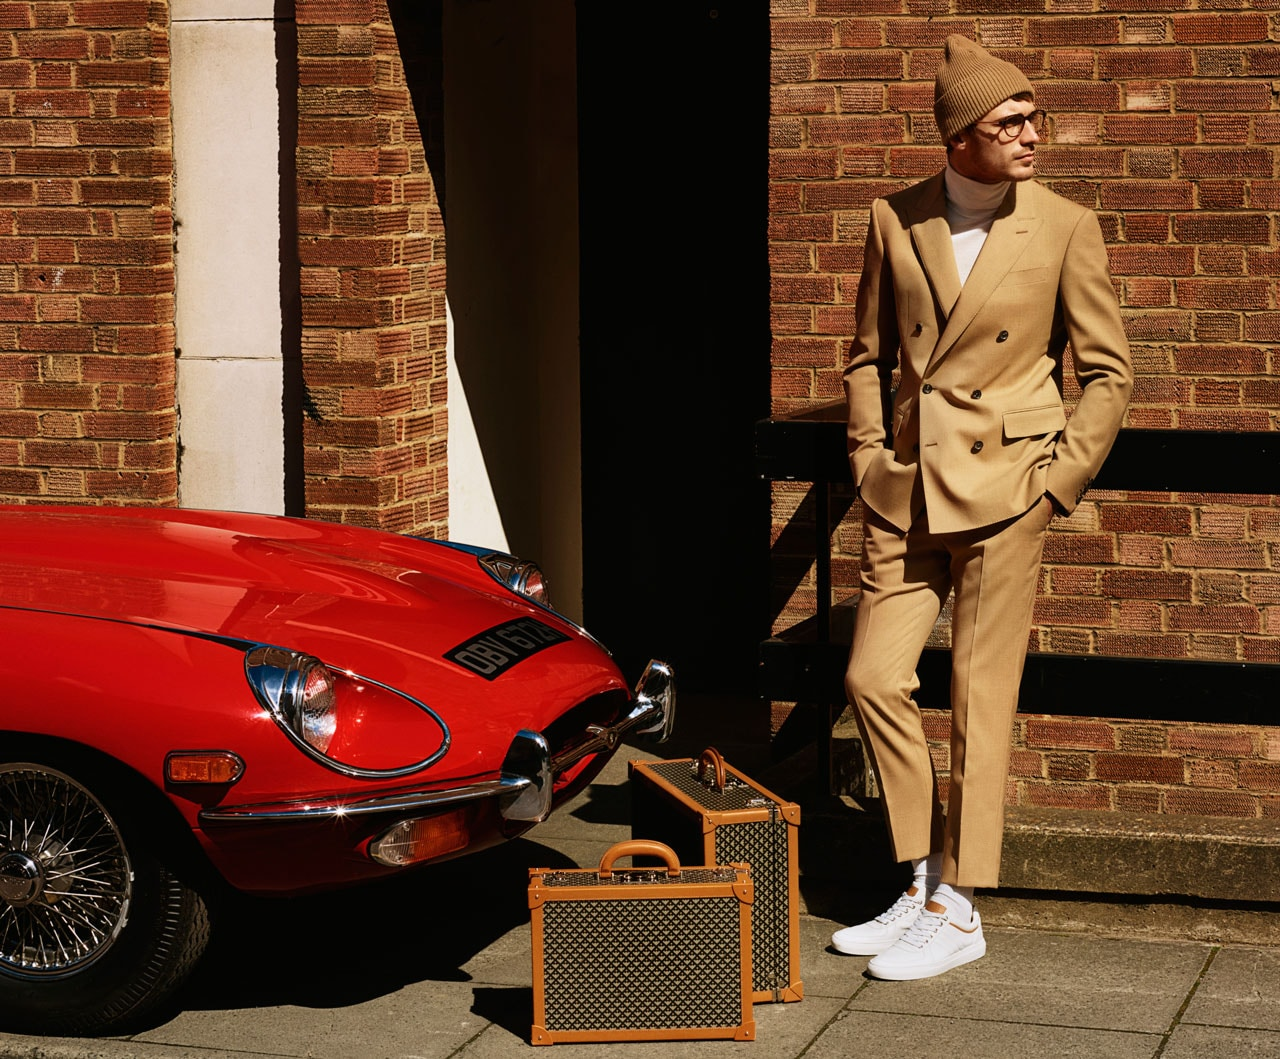 Sites Blyrow Site How To Tie A Double Windsor Knot Diagram Car Interior Design Clment Wears Boxy Breasted Wool Canvas Suit In Camel Fine Gauge Turtleneck Bone Cashmere Beanie Optical Glasses With